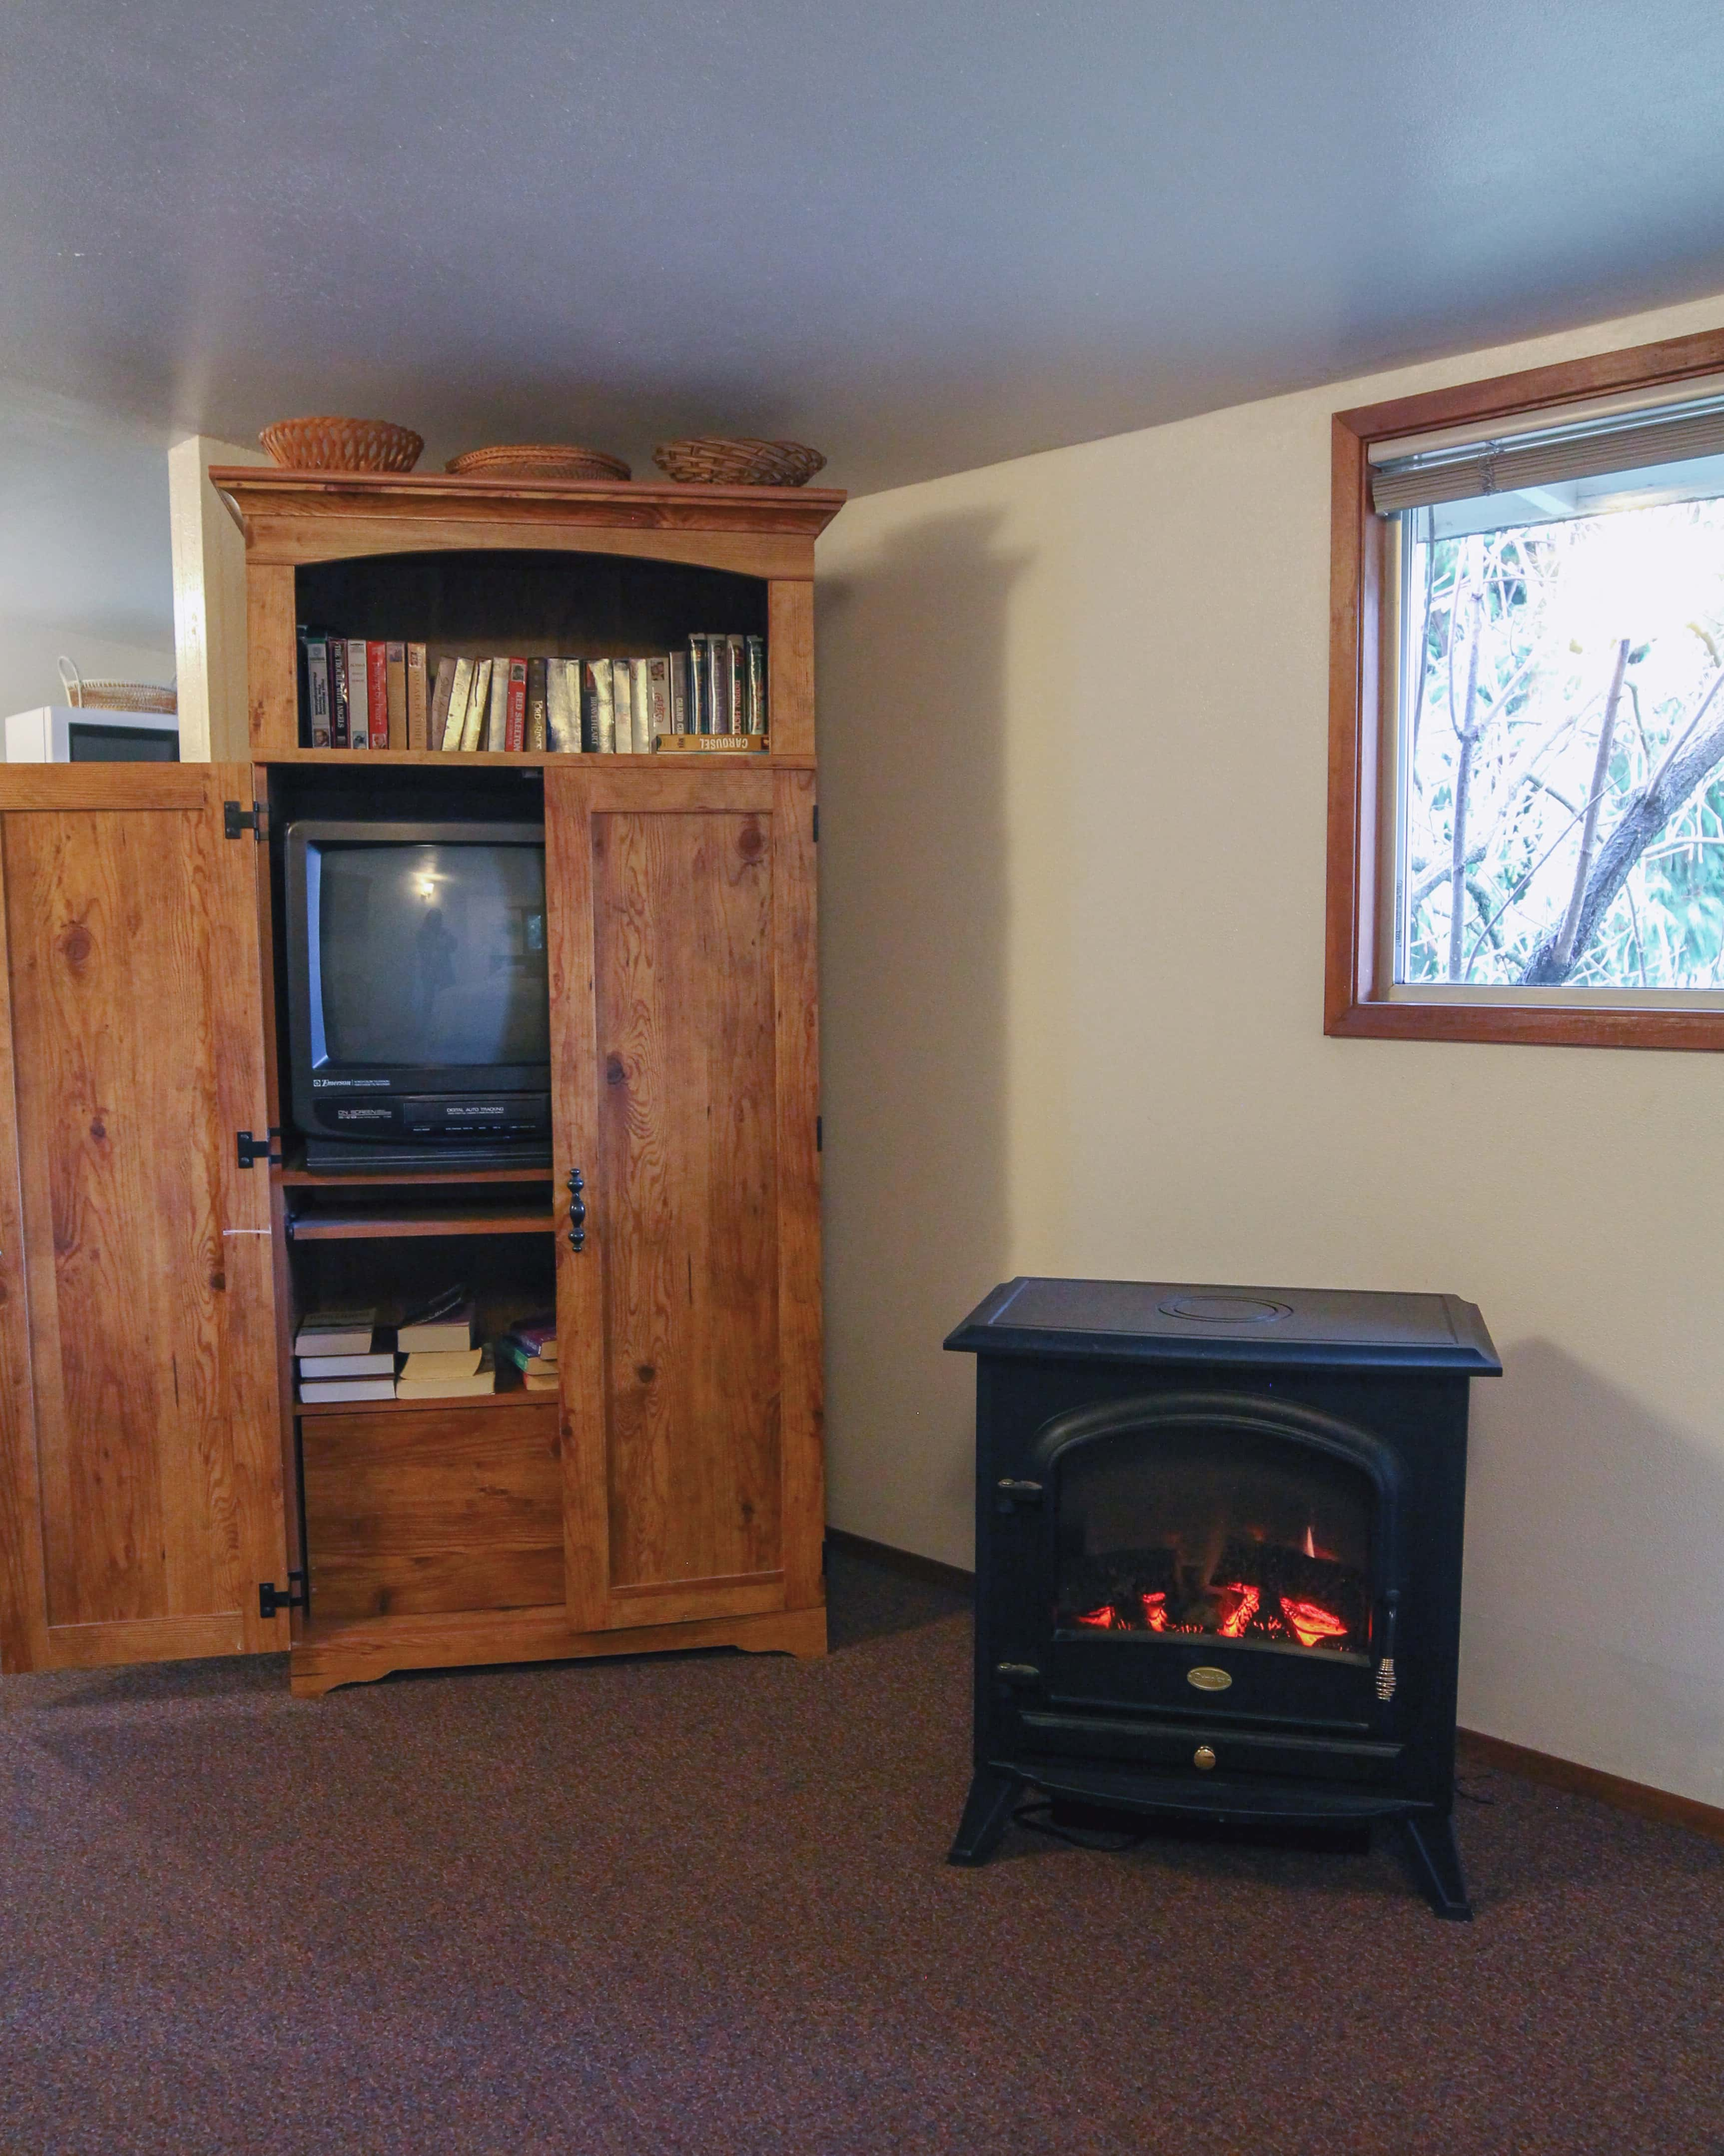 Emerald Valley Inn - Hemlock Suite TV and Electric Fireplace